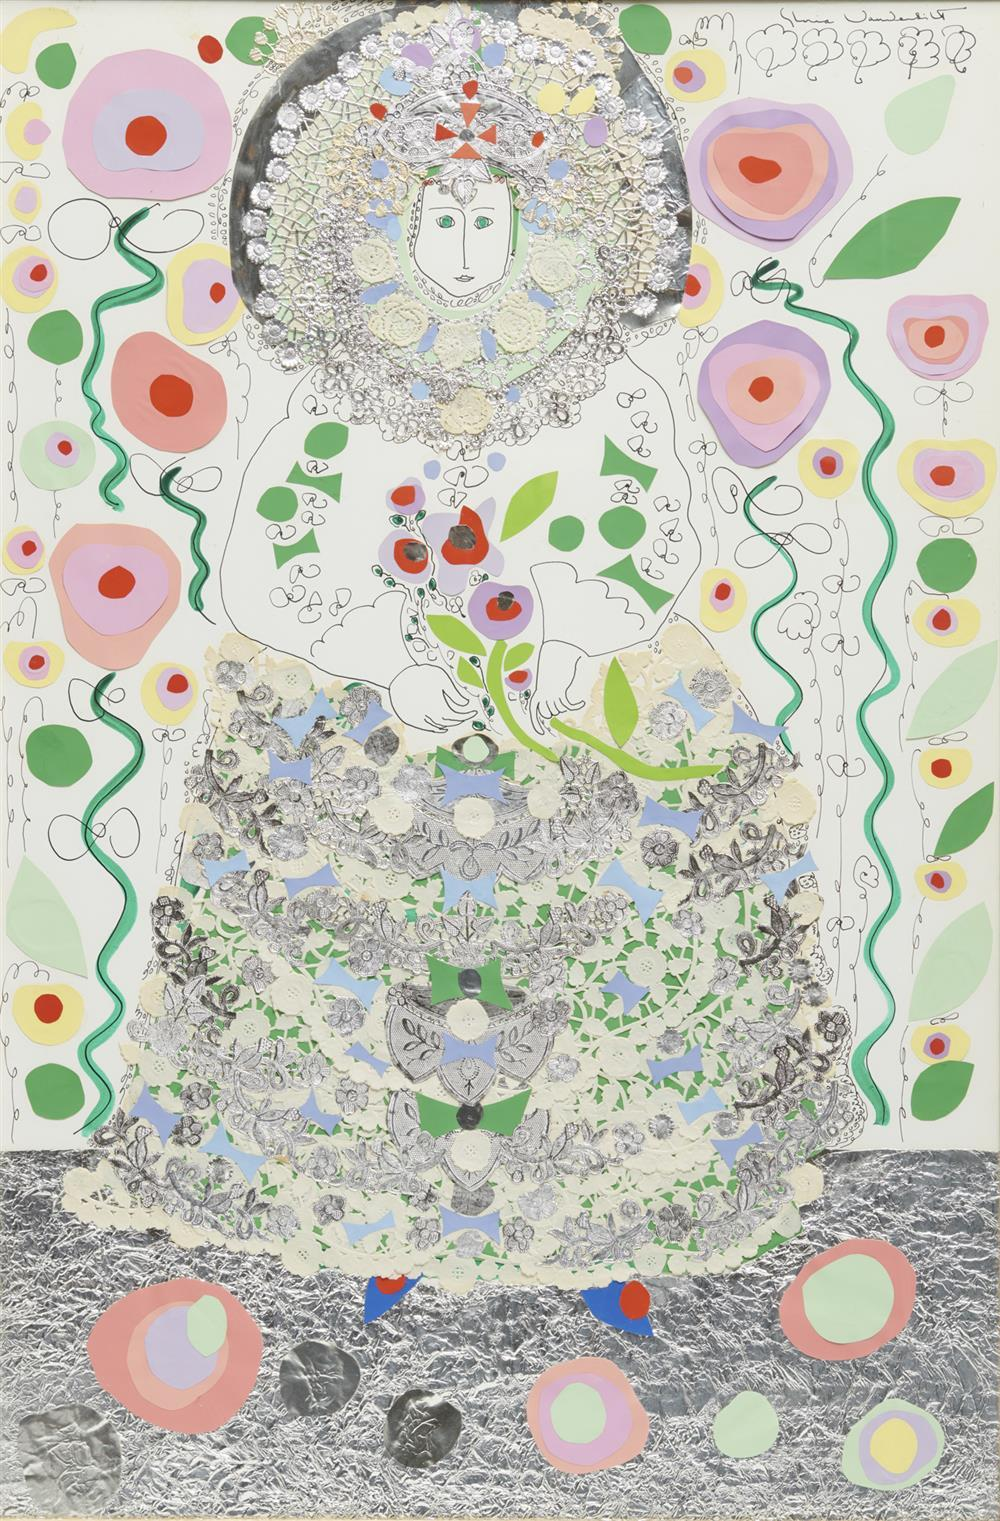 GLORIA VANDERBILT, (American, b. 1924), Girl in Blue and Silver, mixed media (marker, ink, foil, and cut paper), sight: 35 1/2 x 23 1/2 in., frame: 47 1/2 x 35 1/2 in.